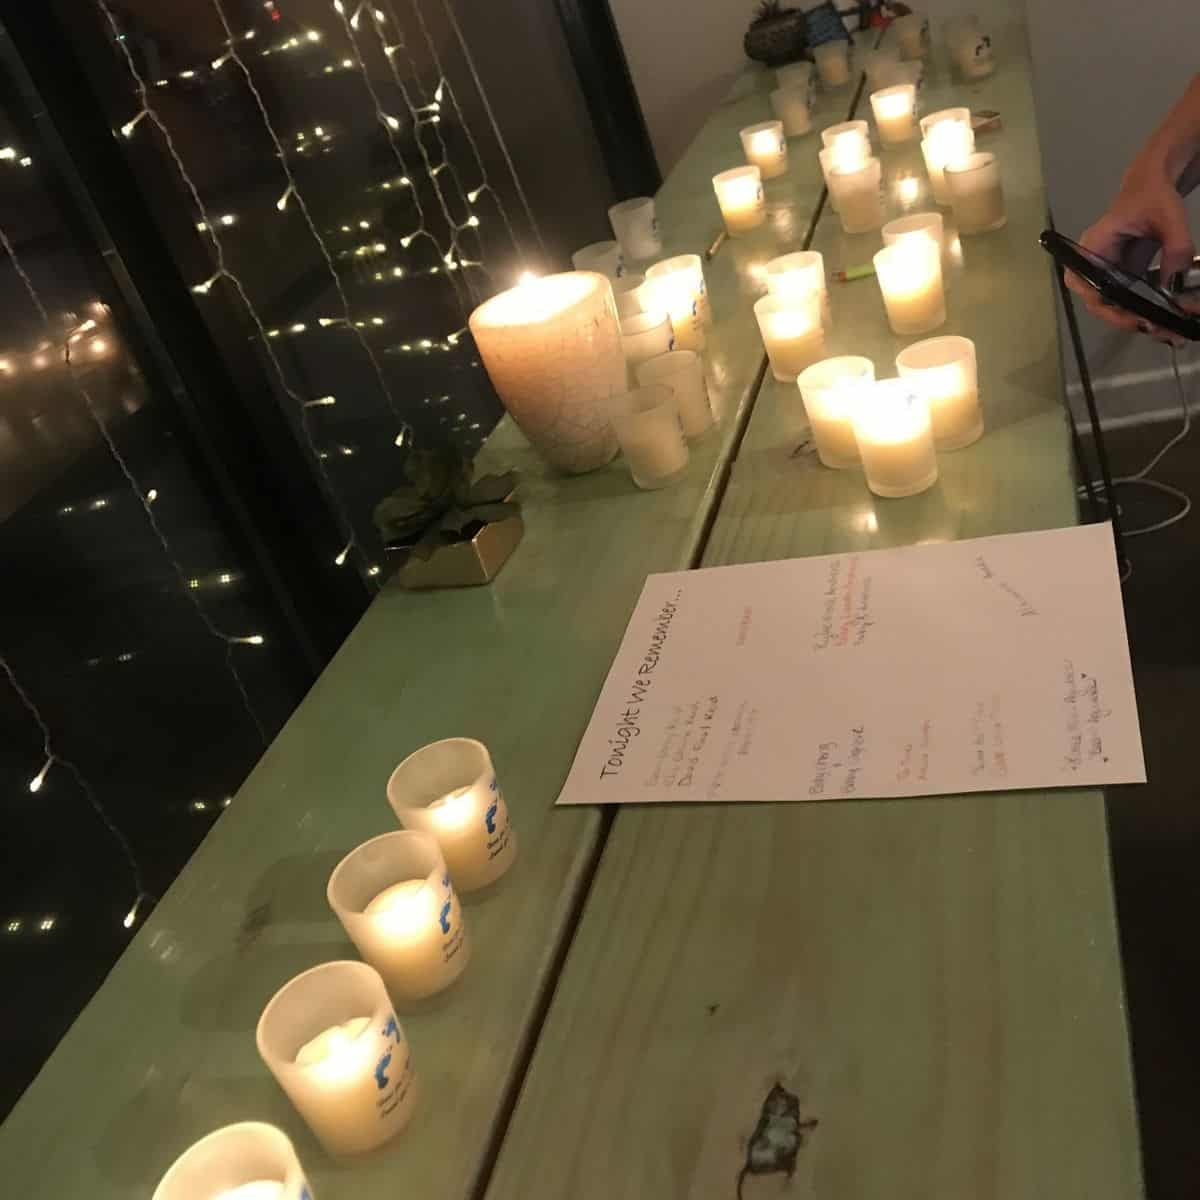 lighted candles on table in honor of Wave of Light annual event